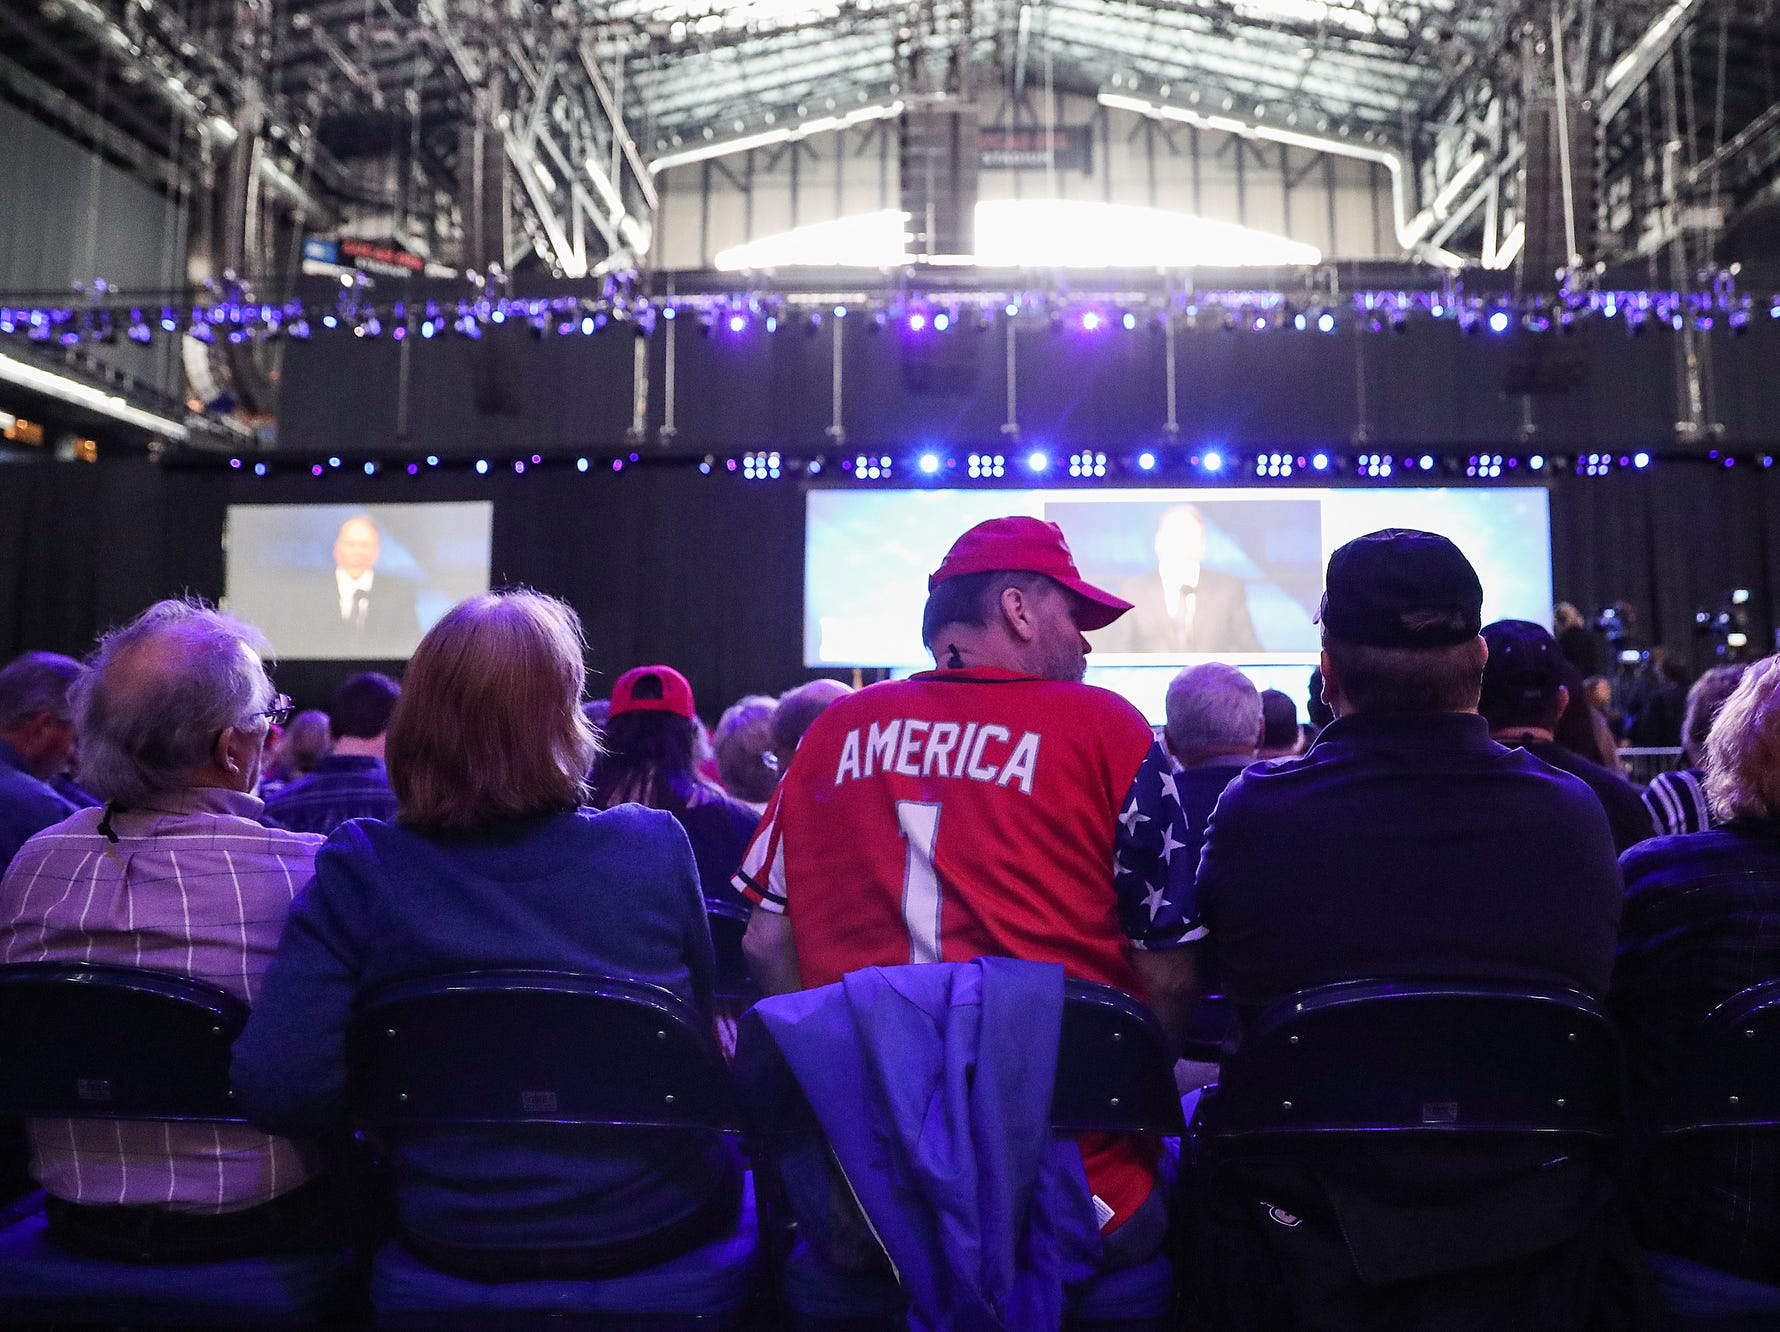 Spectators wait for the National Rifle Association Institute for Legislative Action Leadership Forum to begin, Friday, April 26, 2019, at Lucas Oil Stadium in Indianapolis. The forum is part of the 148th NRA annual meetings and exhibits in Indianapolis.